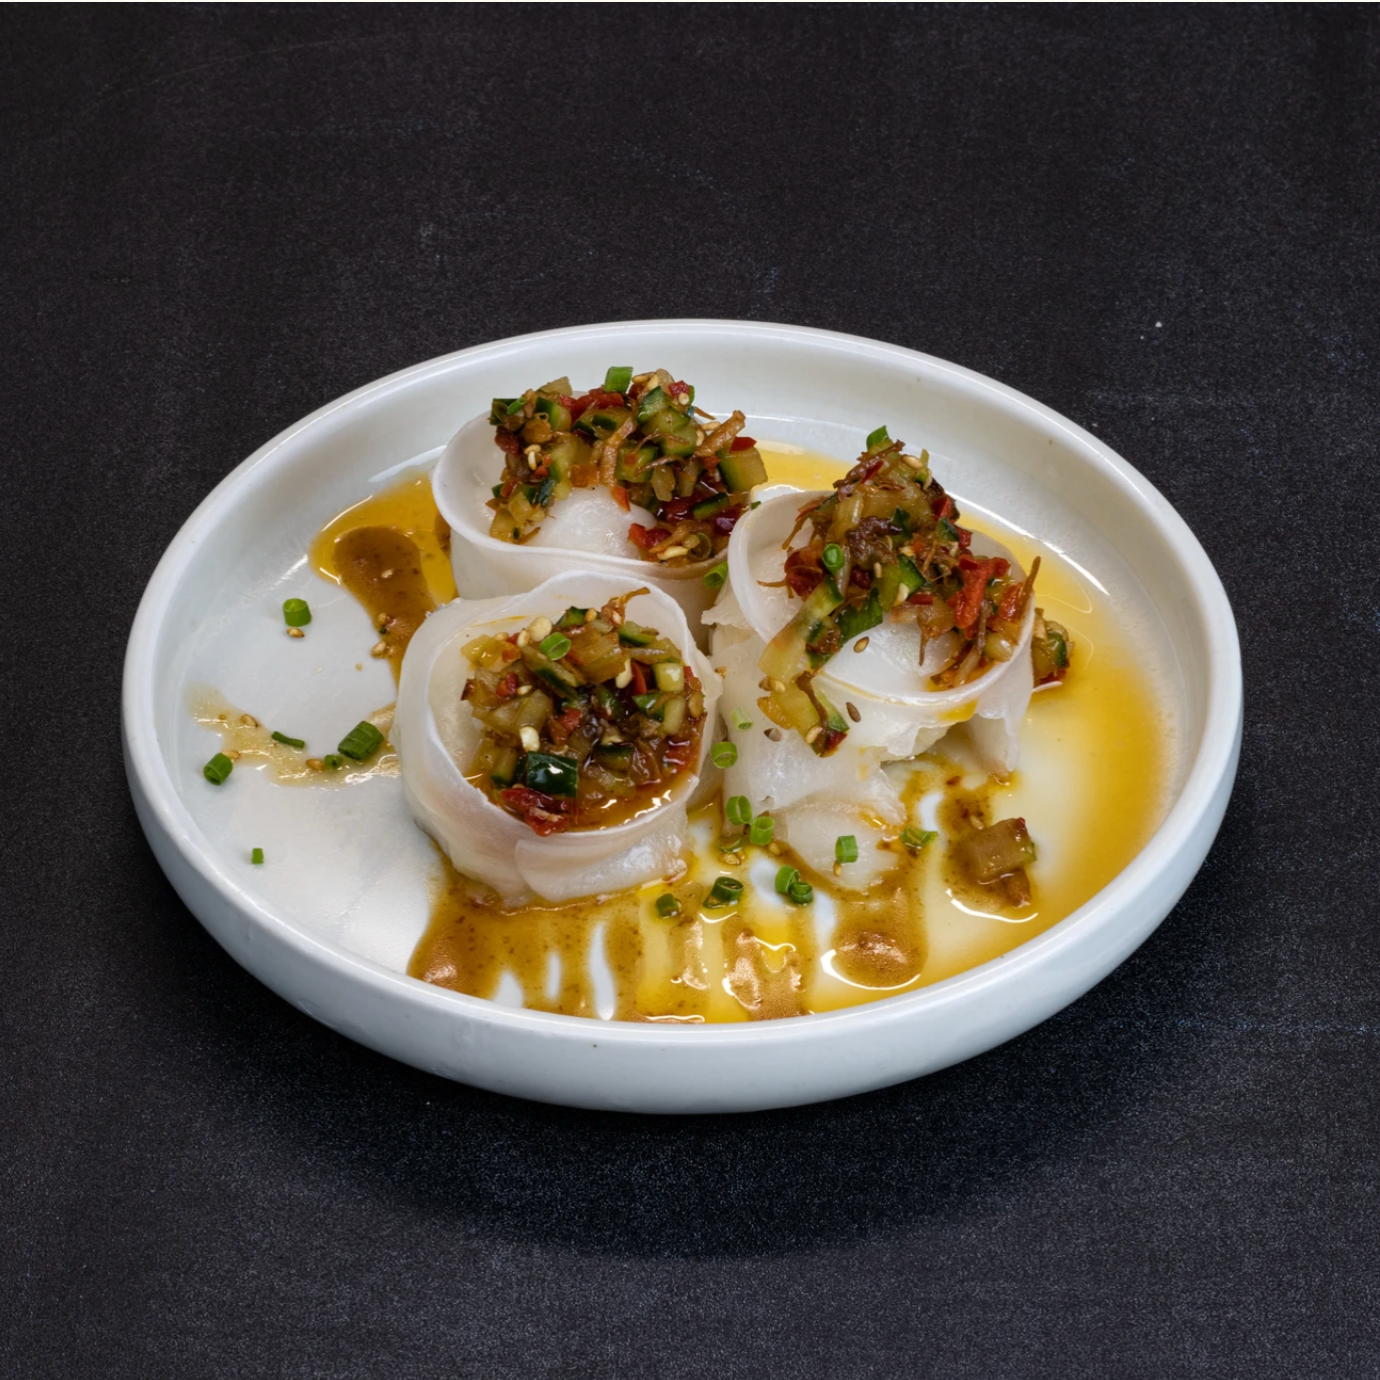 SHARK BAY SCALLOP DUMPLINGS